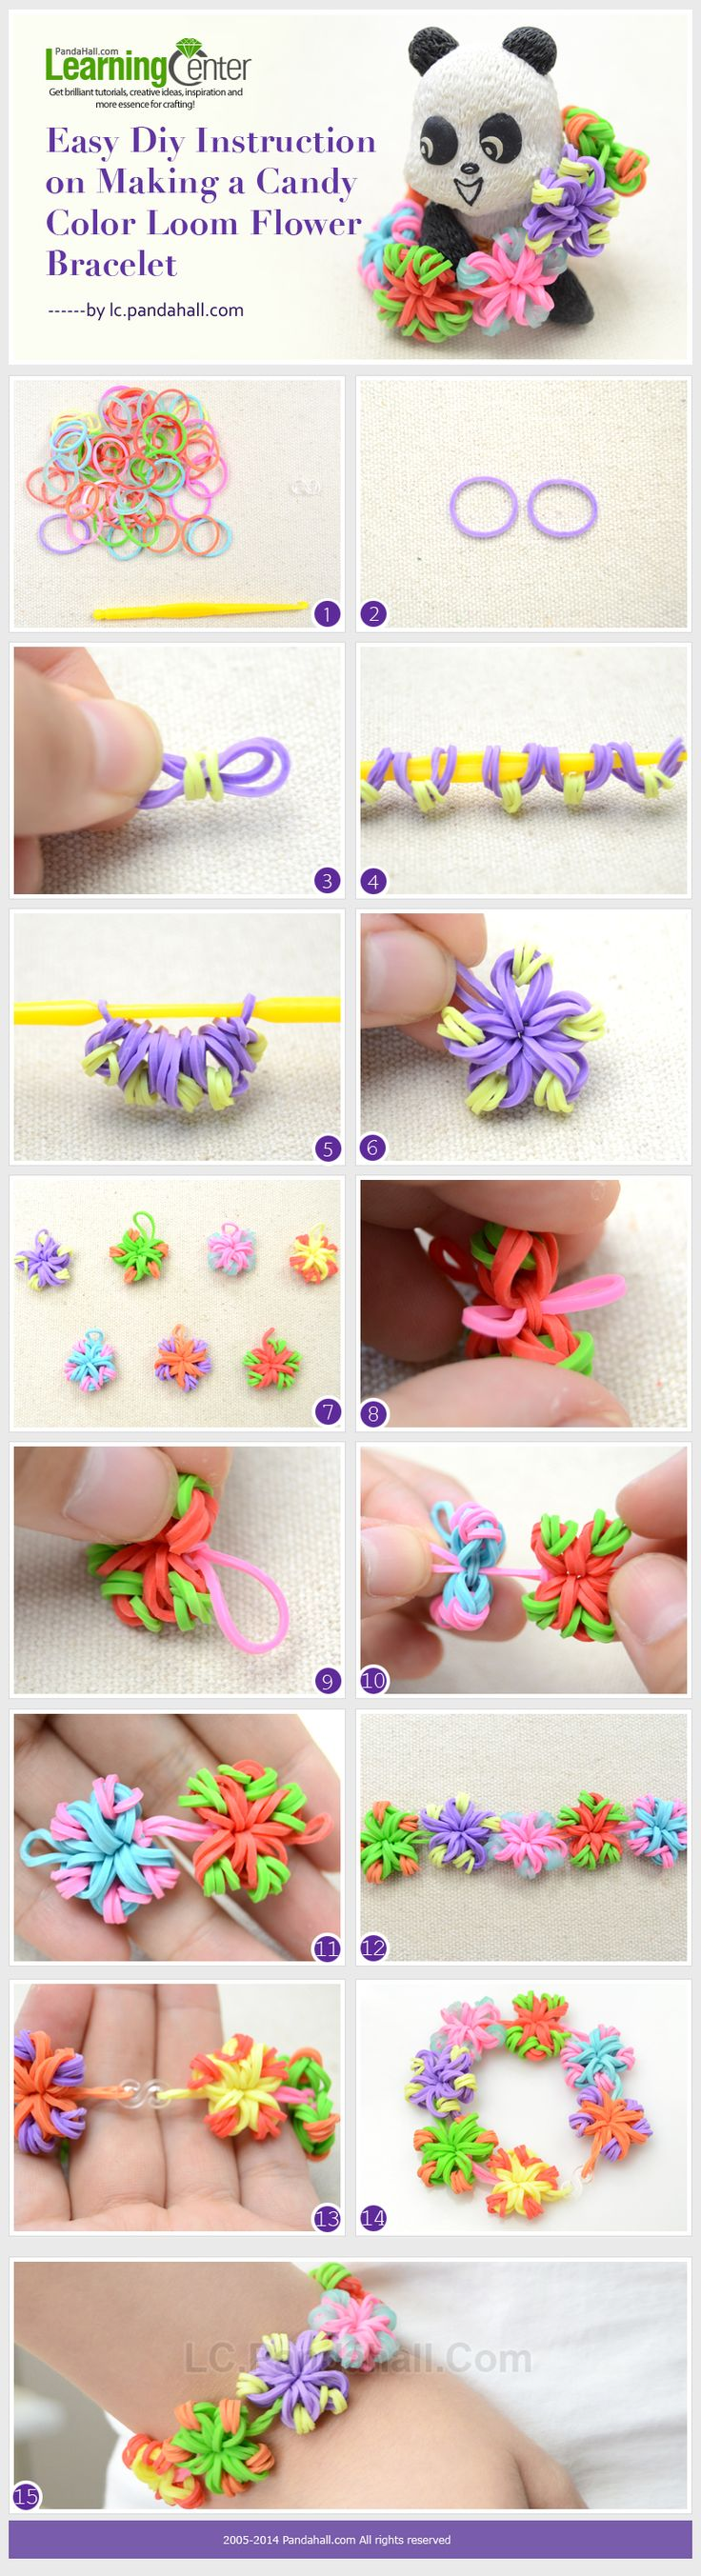 Easy DIY Instruction on Making a Candy Color Loom Flower Bracelet                                                                                                                                                                                 More